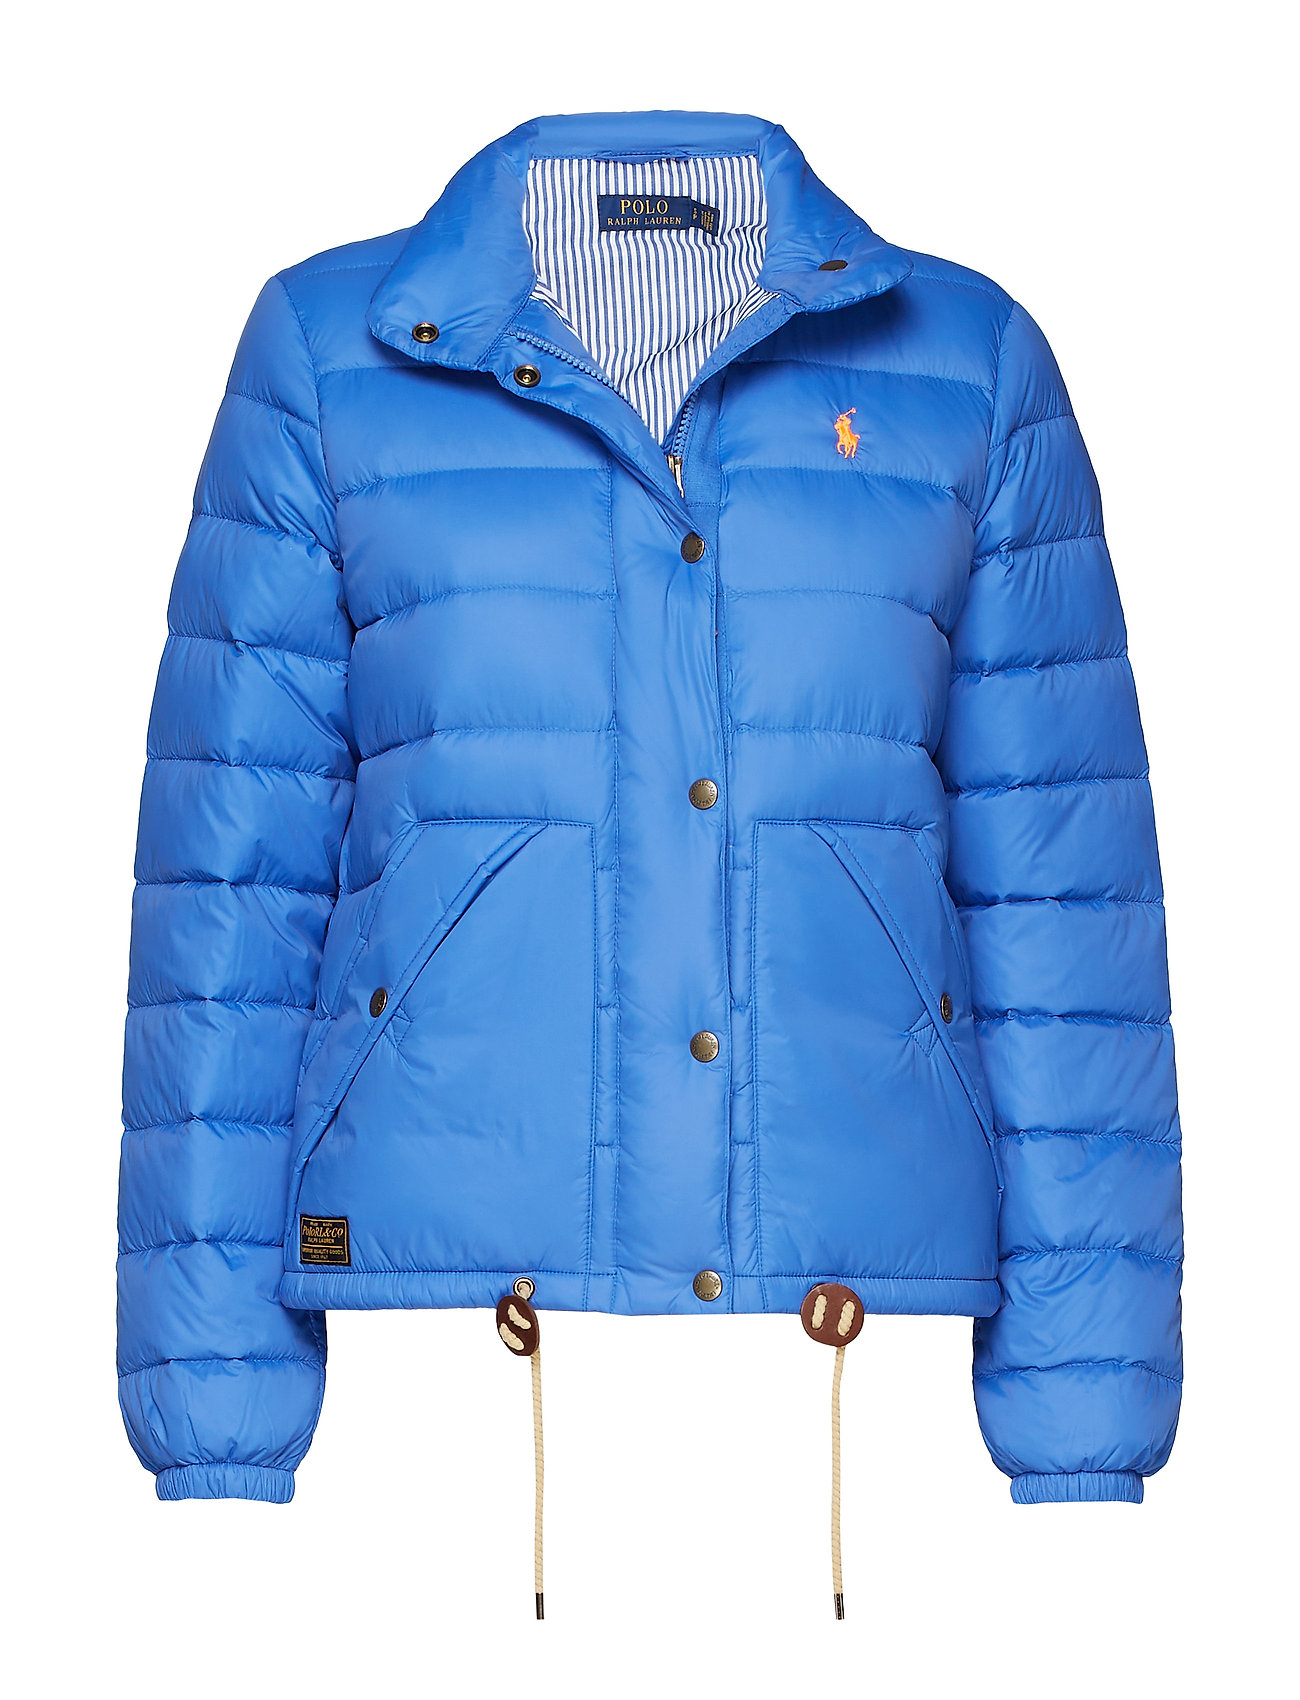 Polo Ralph Lauren Quilted Down Jacket - MAIDSTONE BLUE